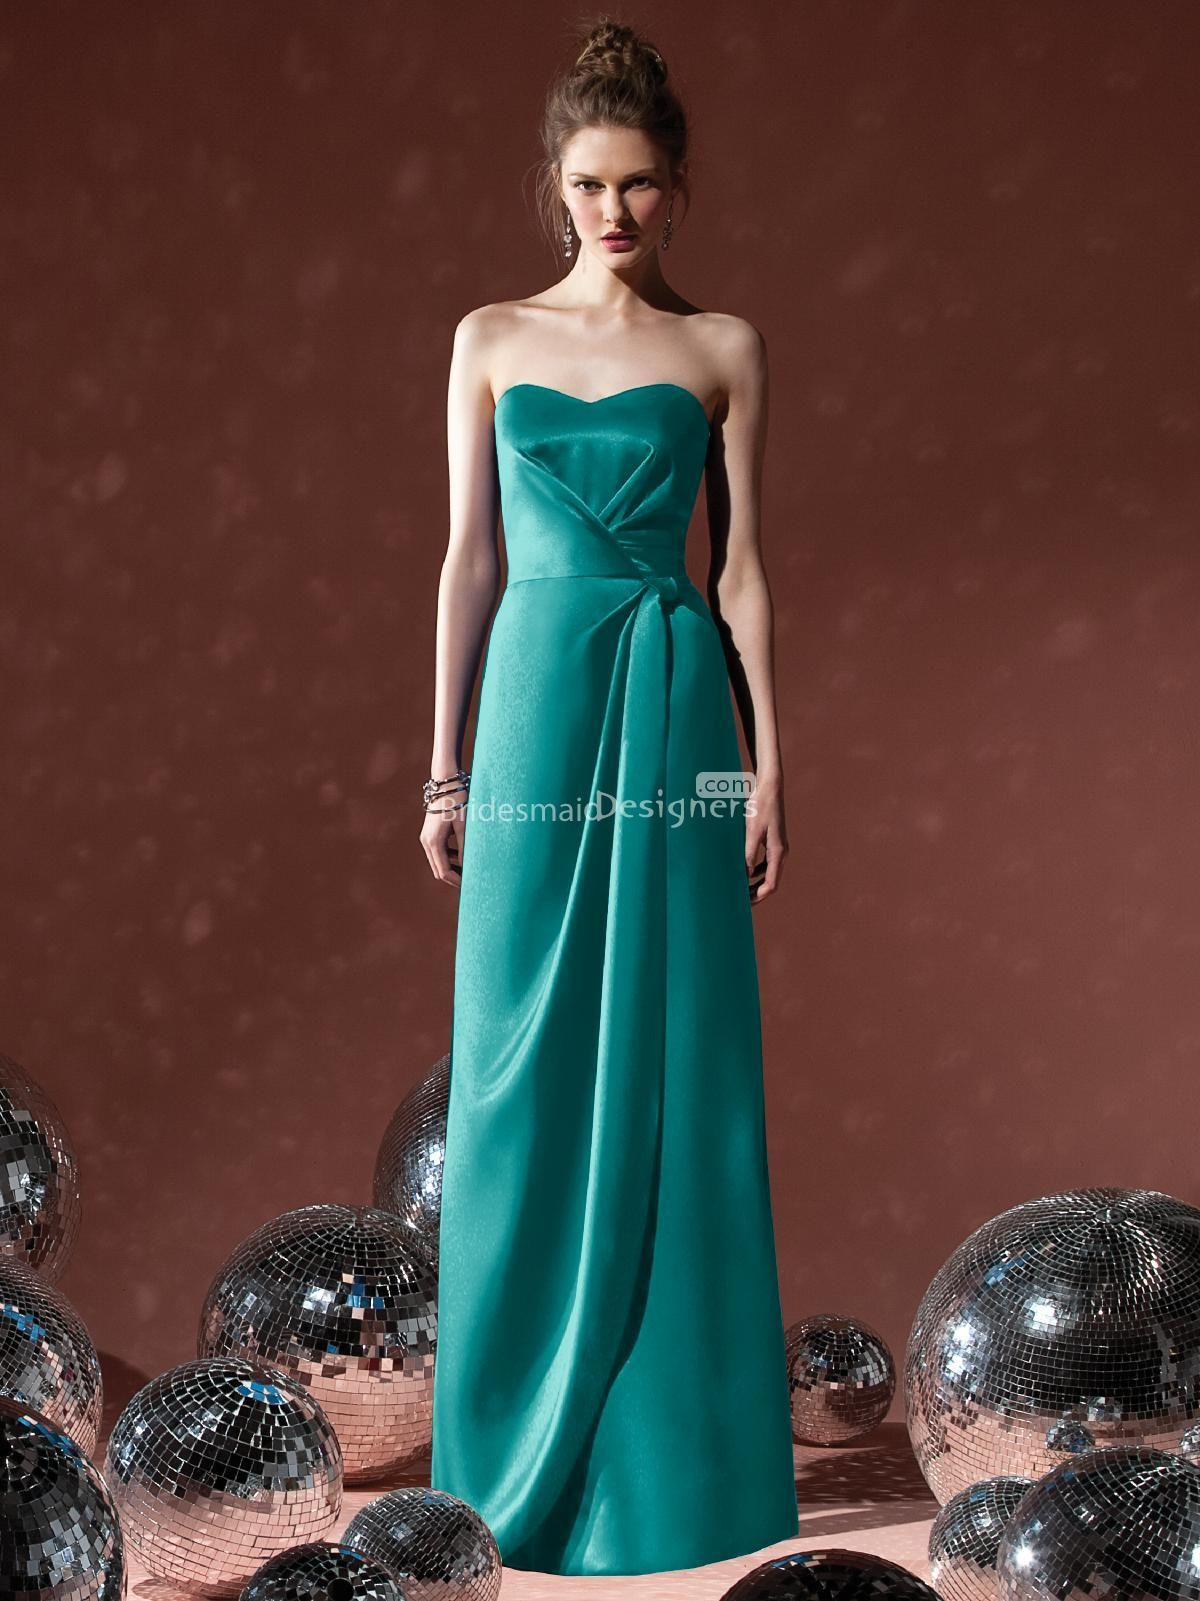 Vogue teal sweetheart sleeveless floor length satin bridesmaid vogue teal sweetheart sleeveless floor length satin bridesmaid dress with wrap skirt us 38100 ombrellifo Images